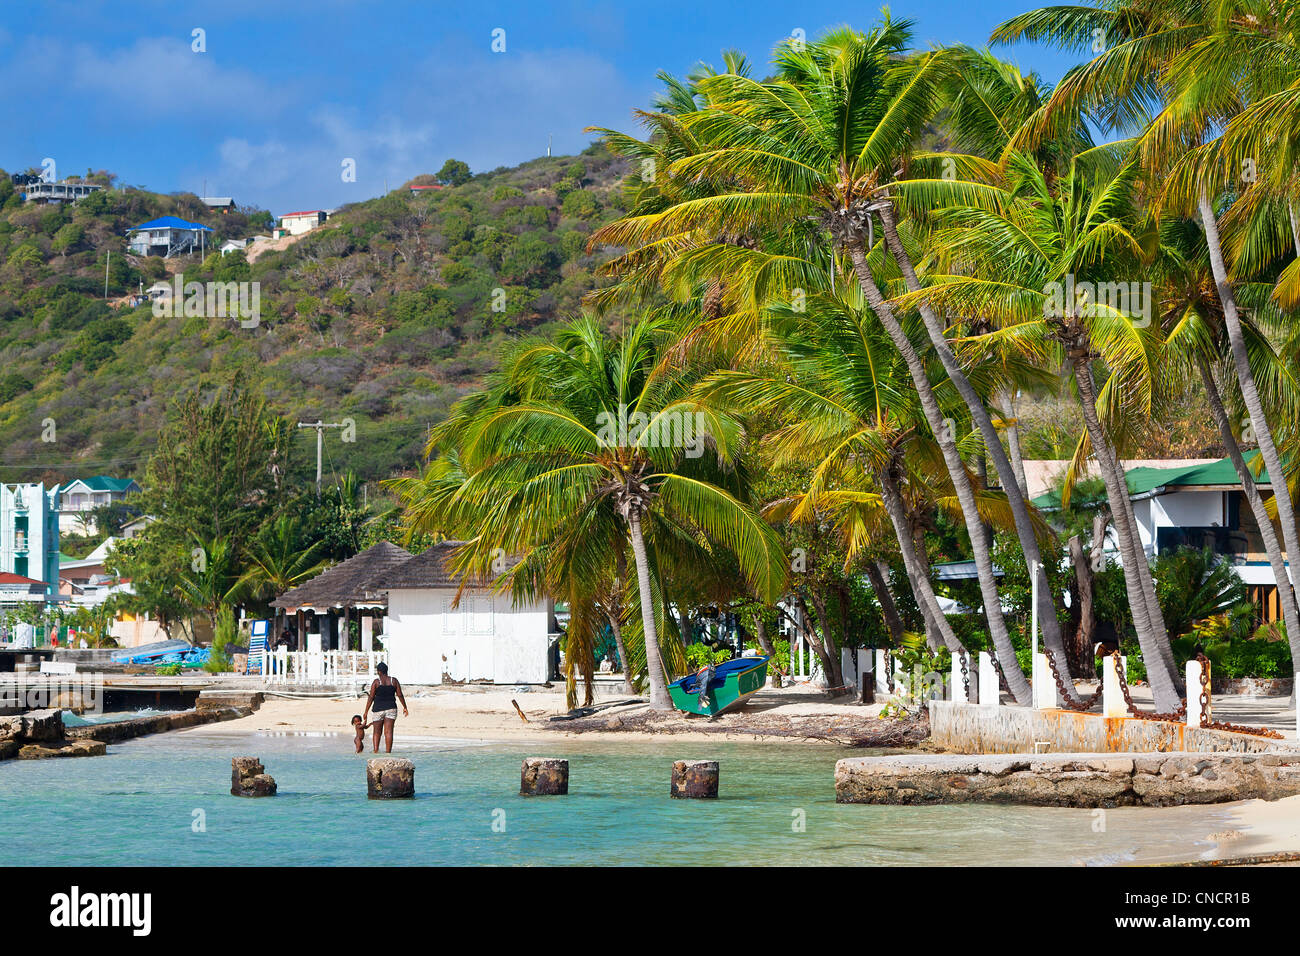 Central America, Caribbean, Lesser Antilles, St. Vincent and the Grenadines, Union Island, Clifton - Stock Image